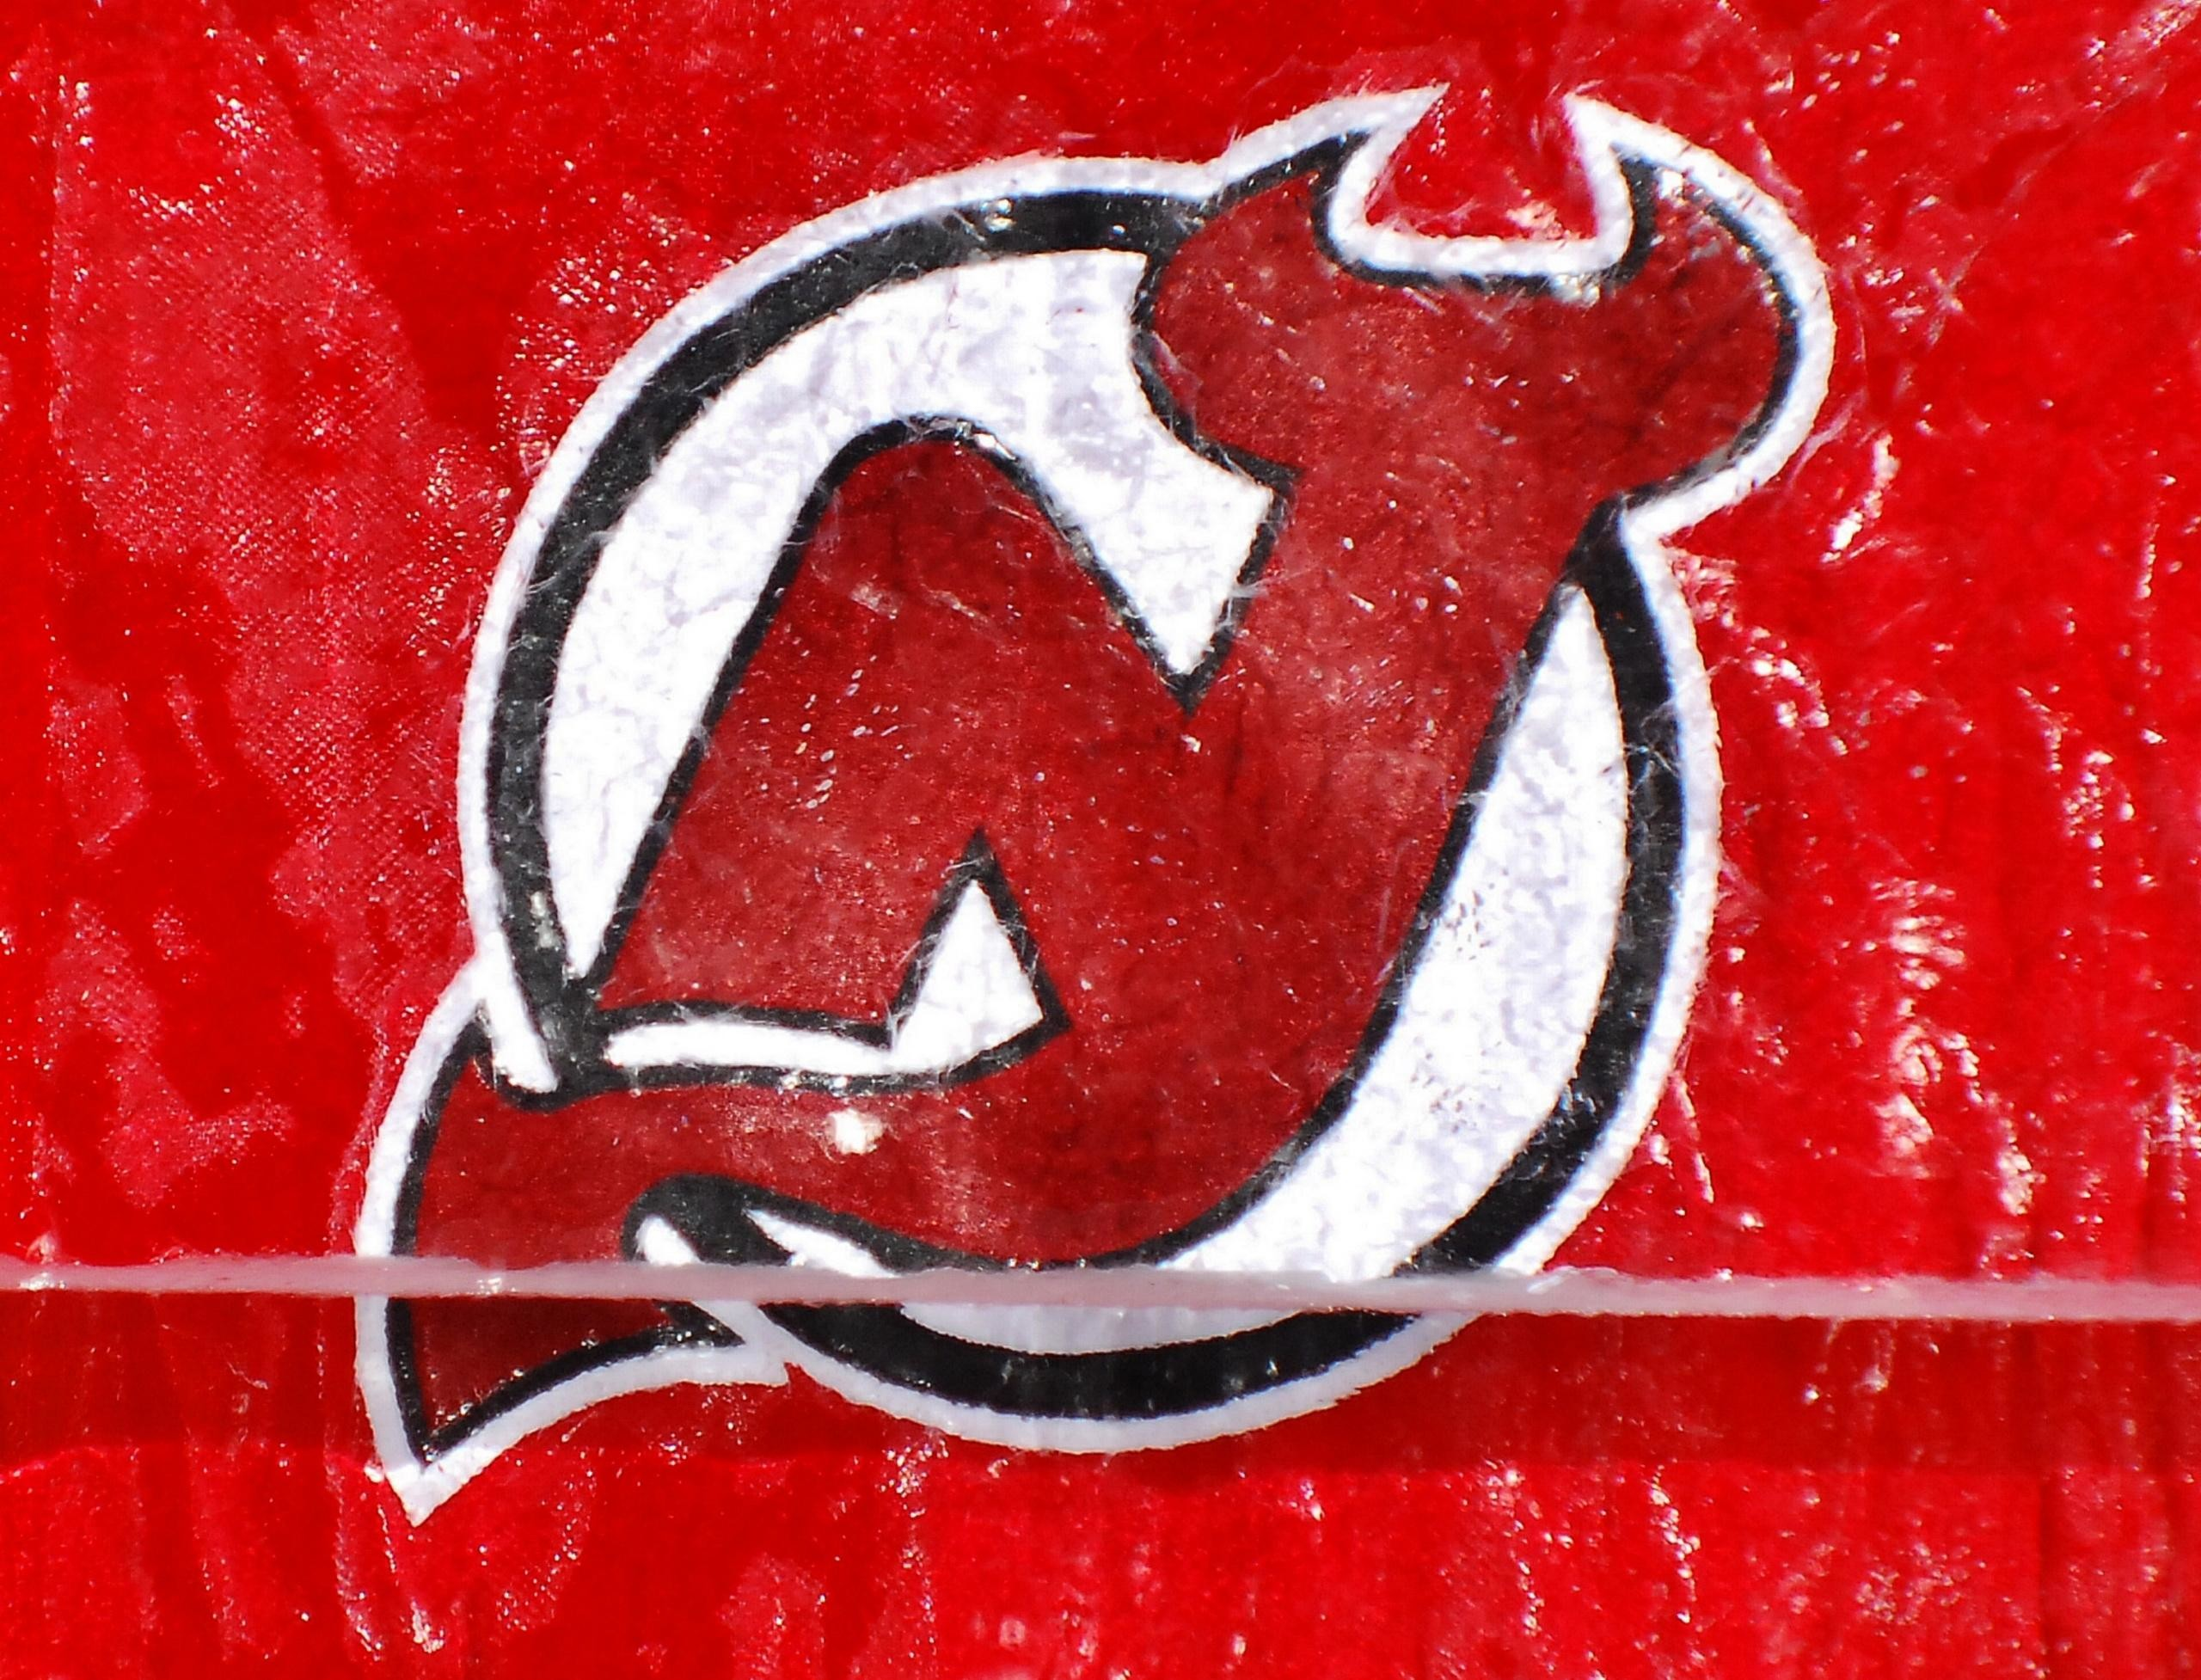 2560x1954 New Jersey Devils wallpapers for iphone